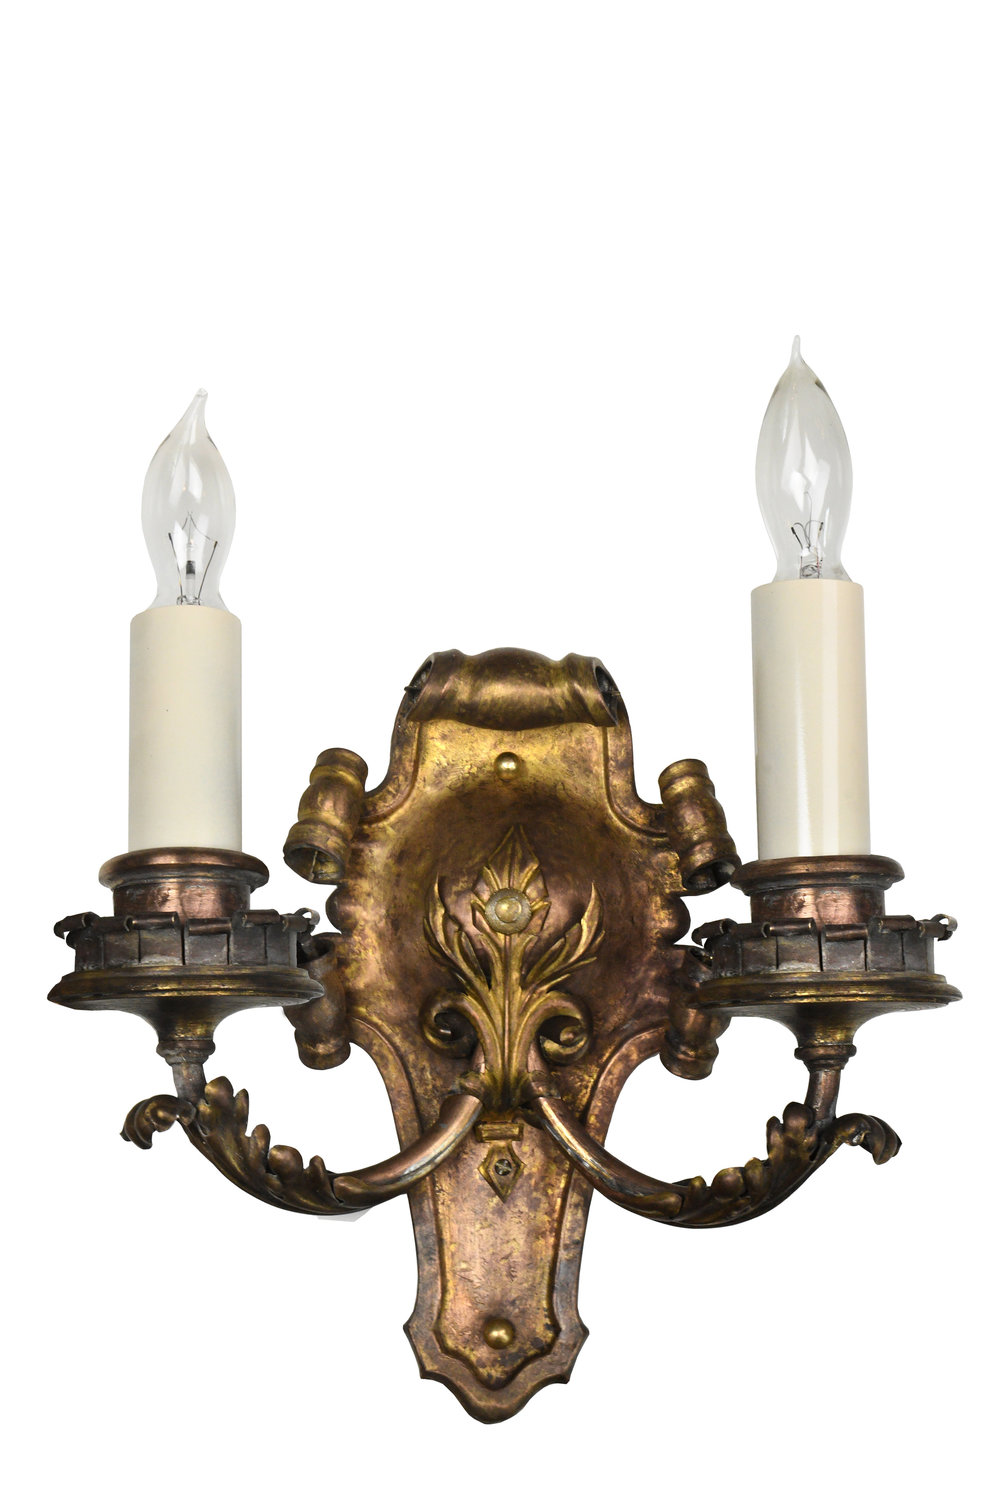 47810-brass-rococo-sconce-front-view-adjusted.jpg